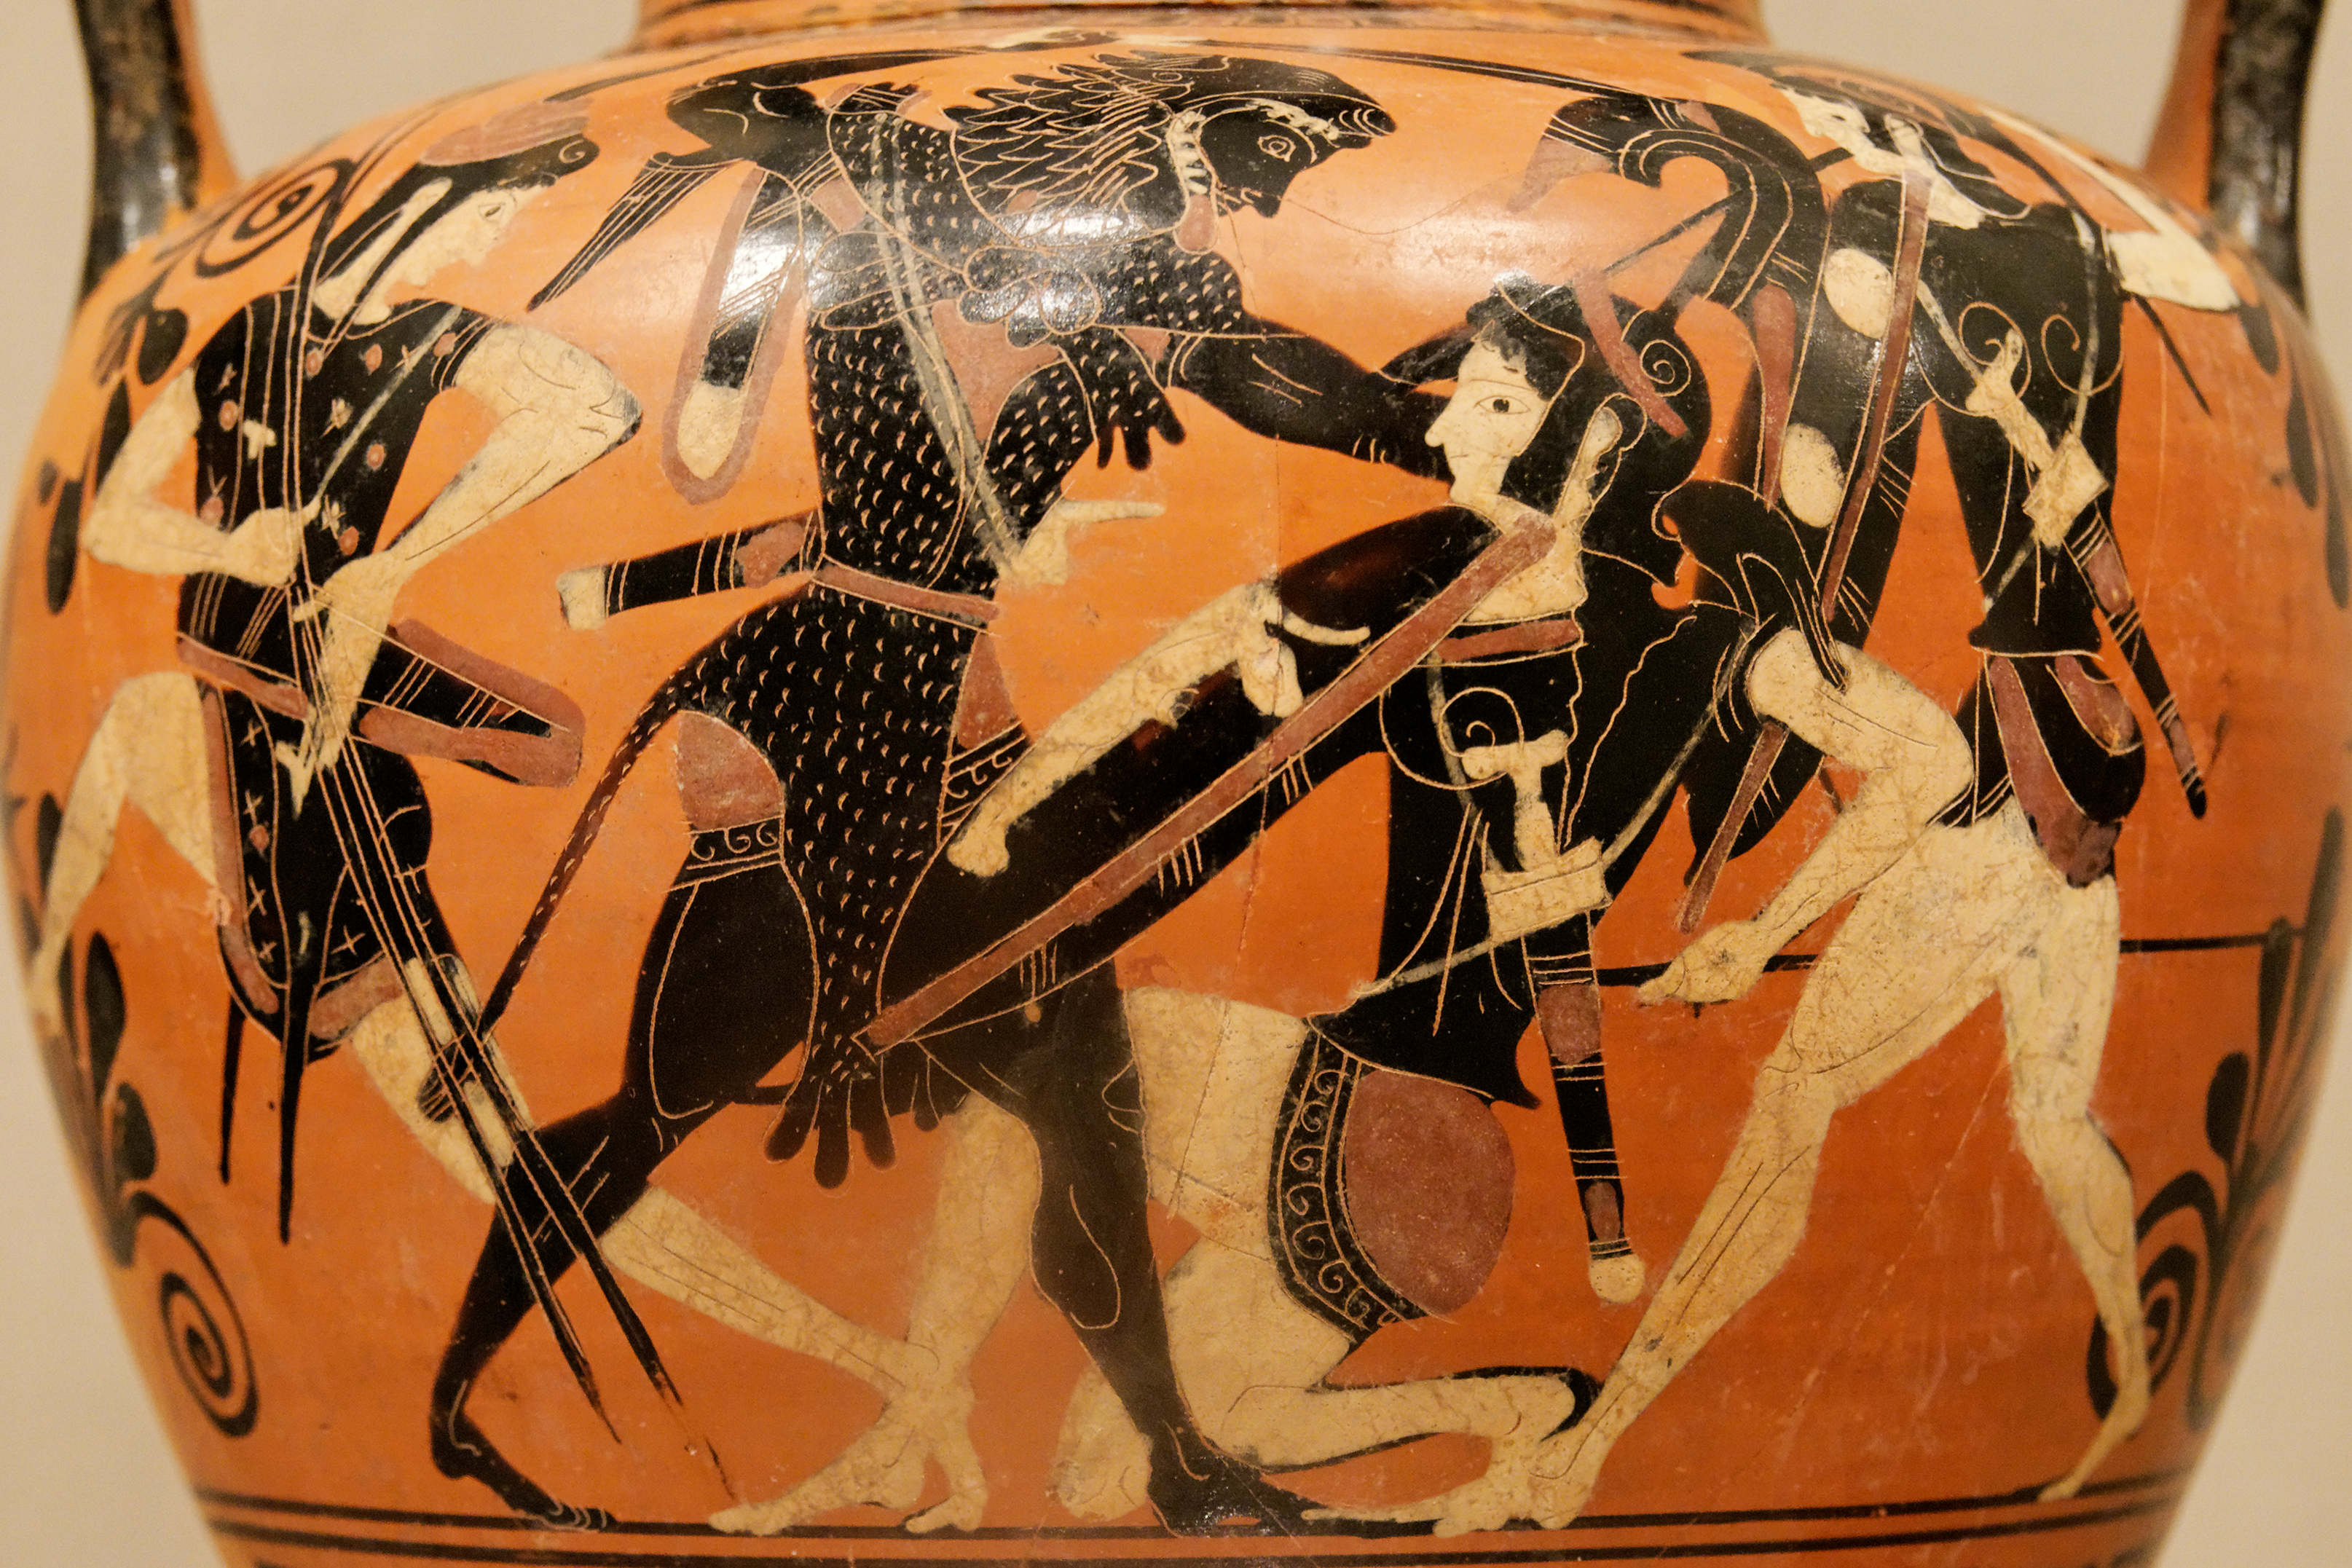 Hercules stealing the girdle of hippolyta